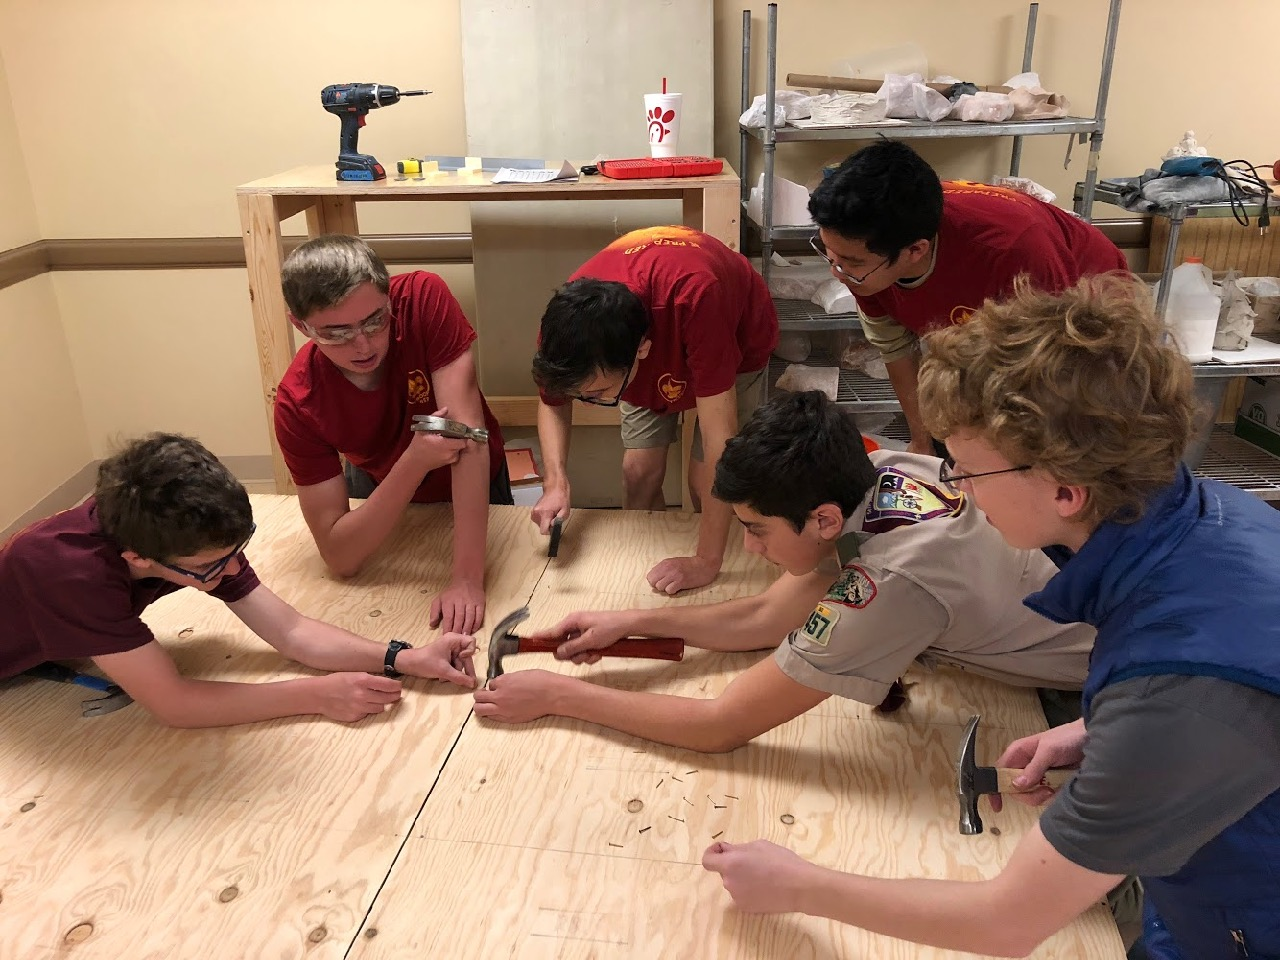 Alex LaBarre center with Lucas, Stephen, Scott, Kevin and Devin all hammering nails to secure two bench tops pictured side by side